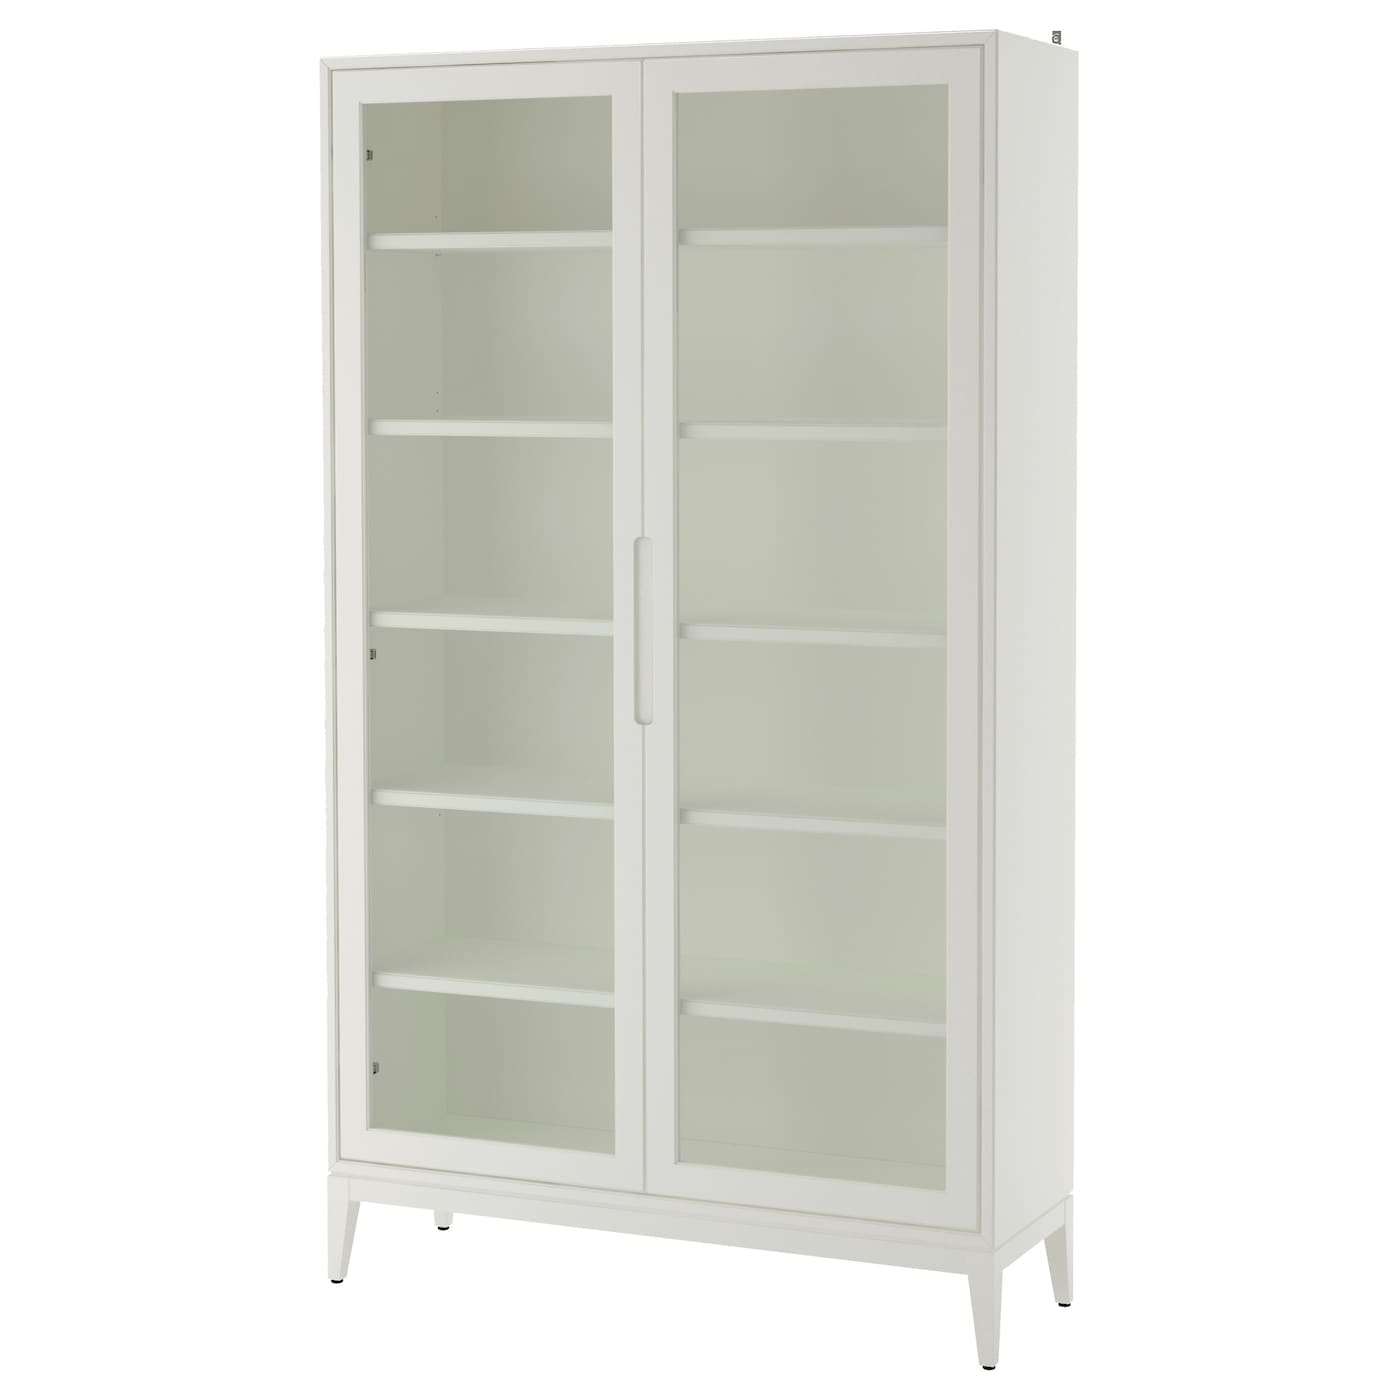 example storage freestanding full size the furnitures of pantry cabinet home cabinets sets ikea